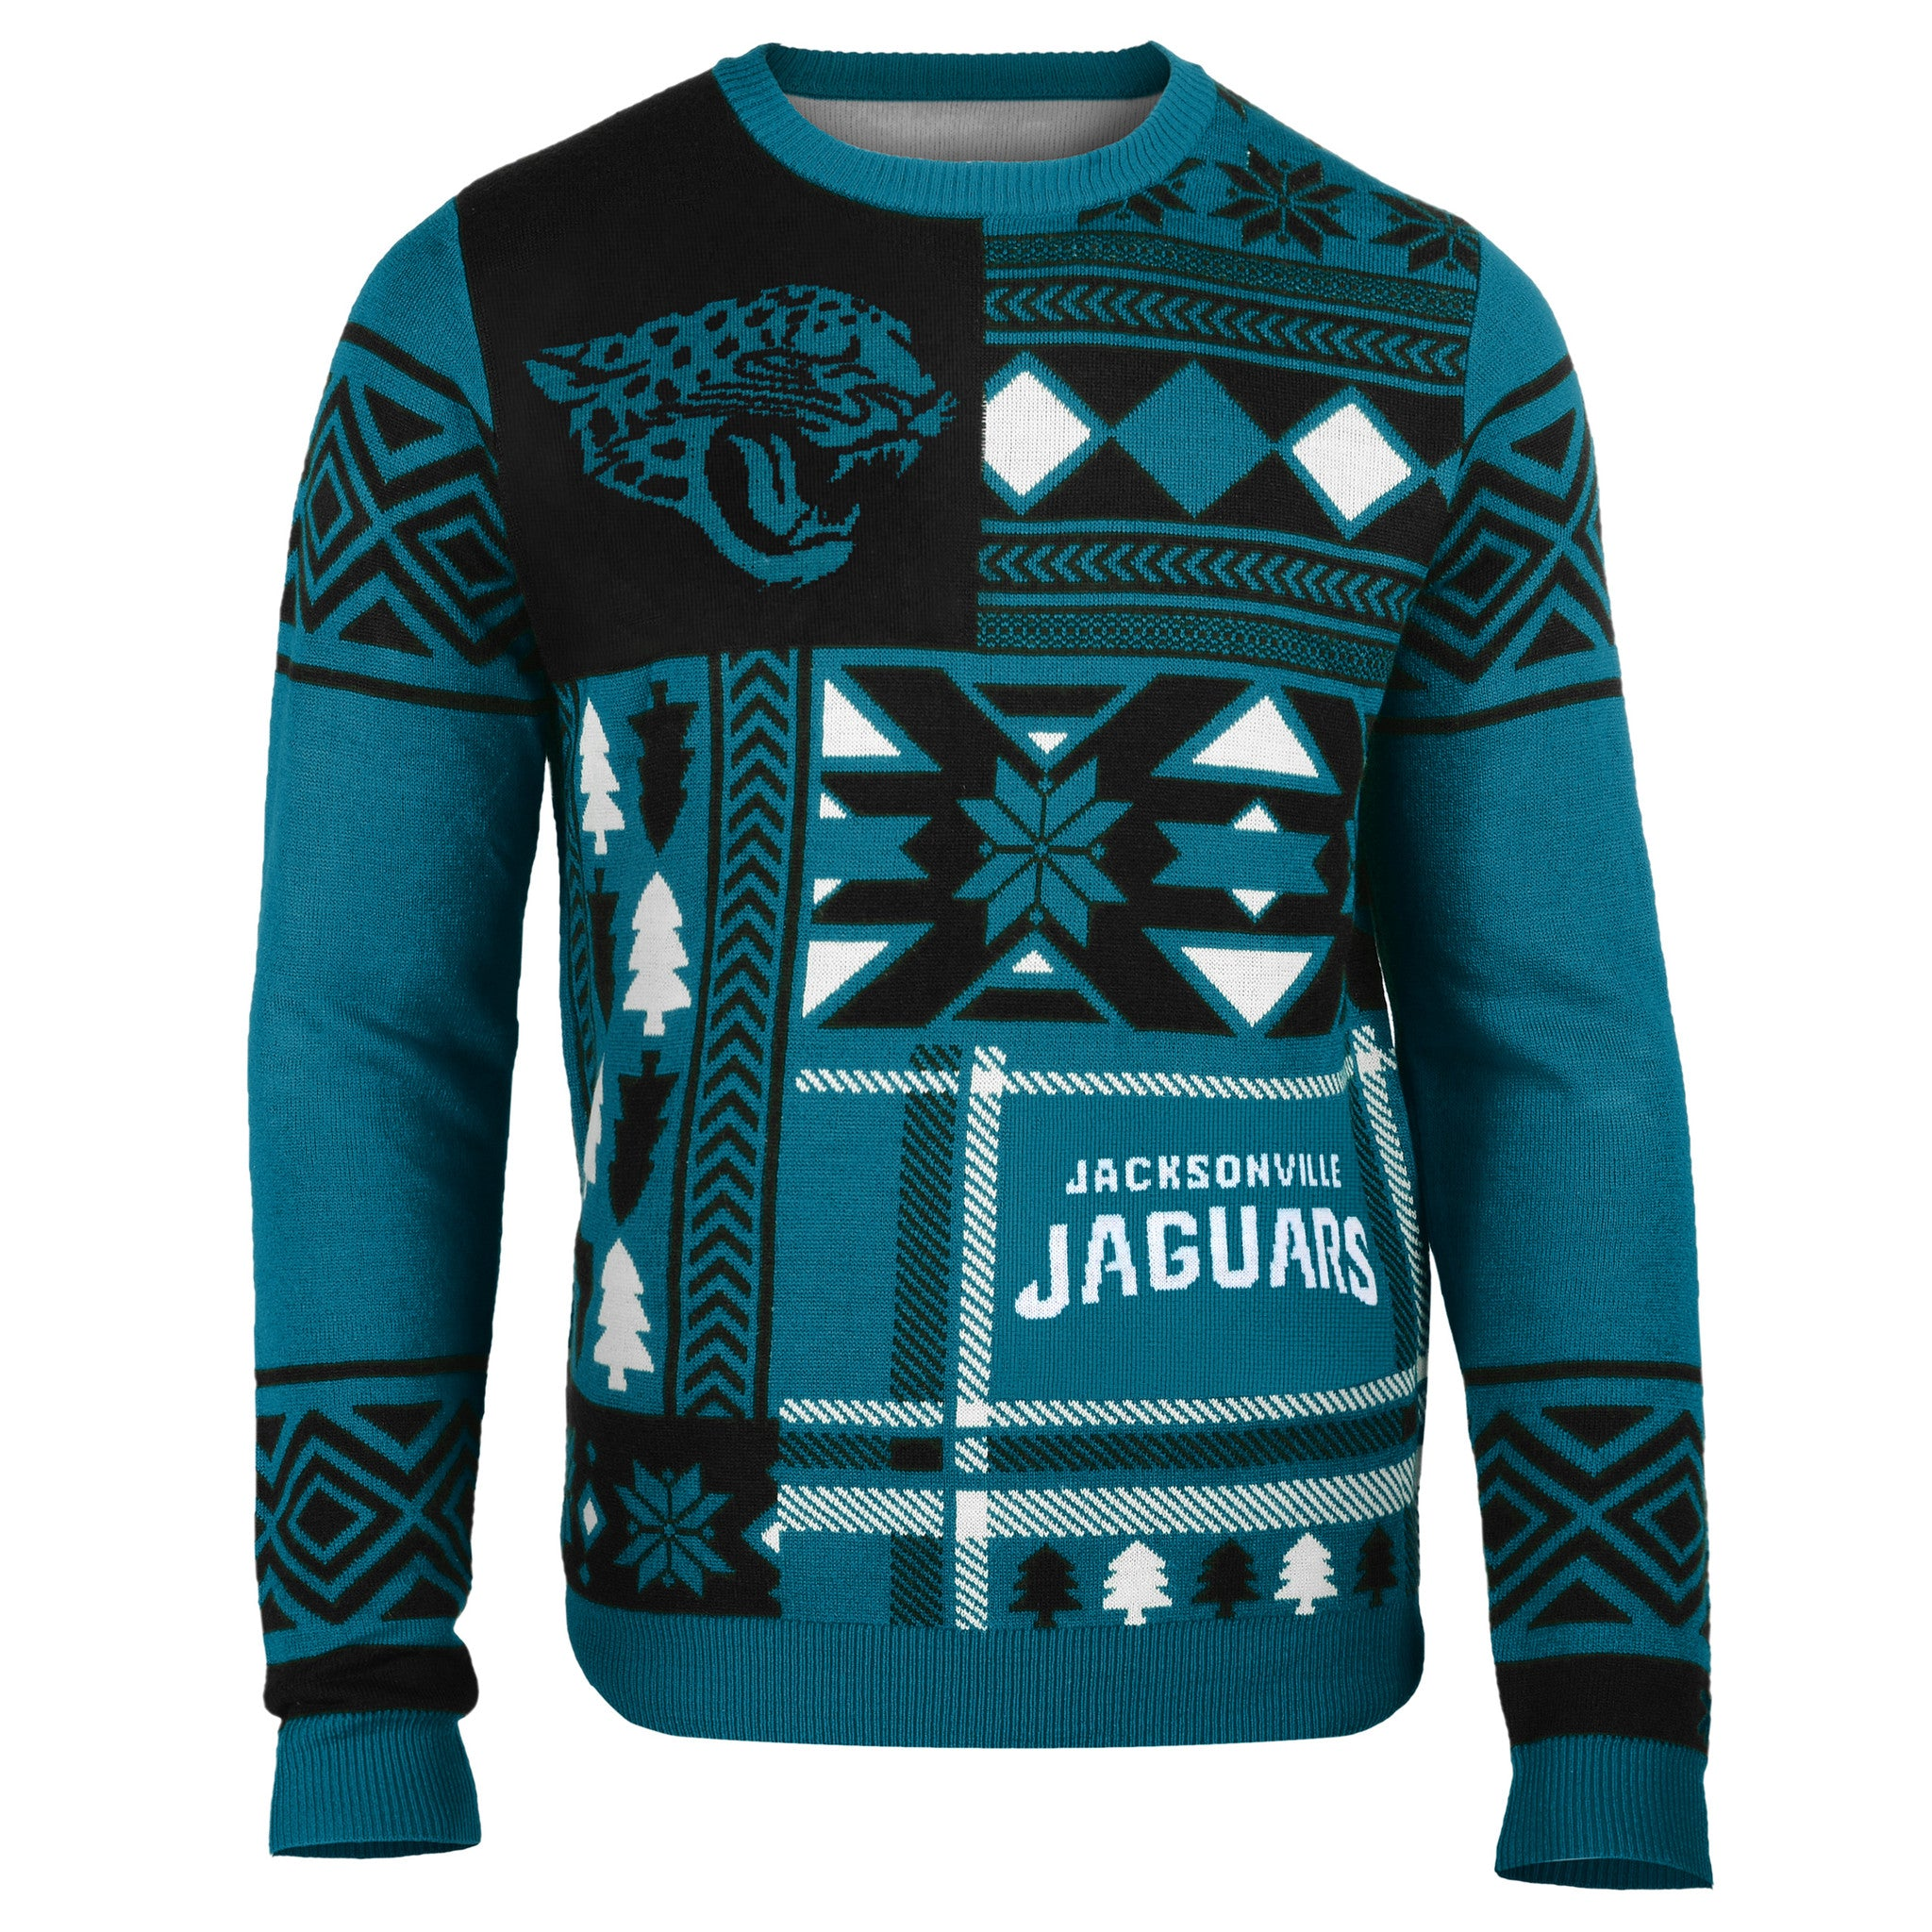 Jacksonville jaguars patches ugly crew neck sweater for Unique home stays jersey